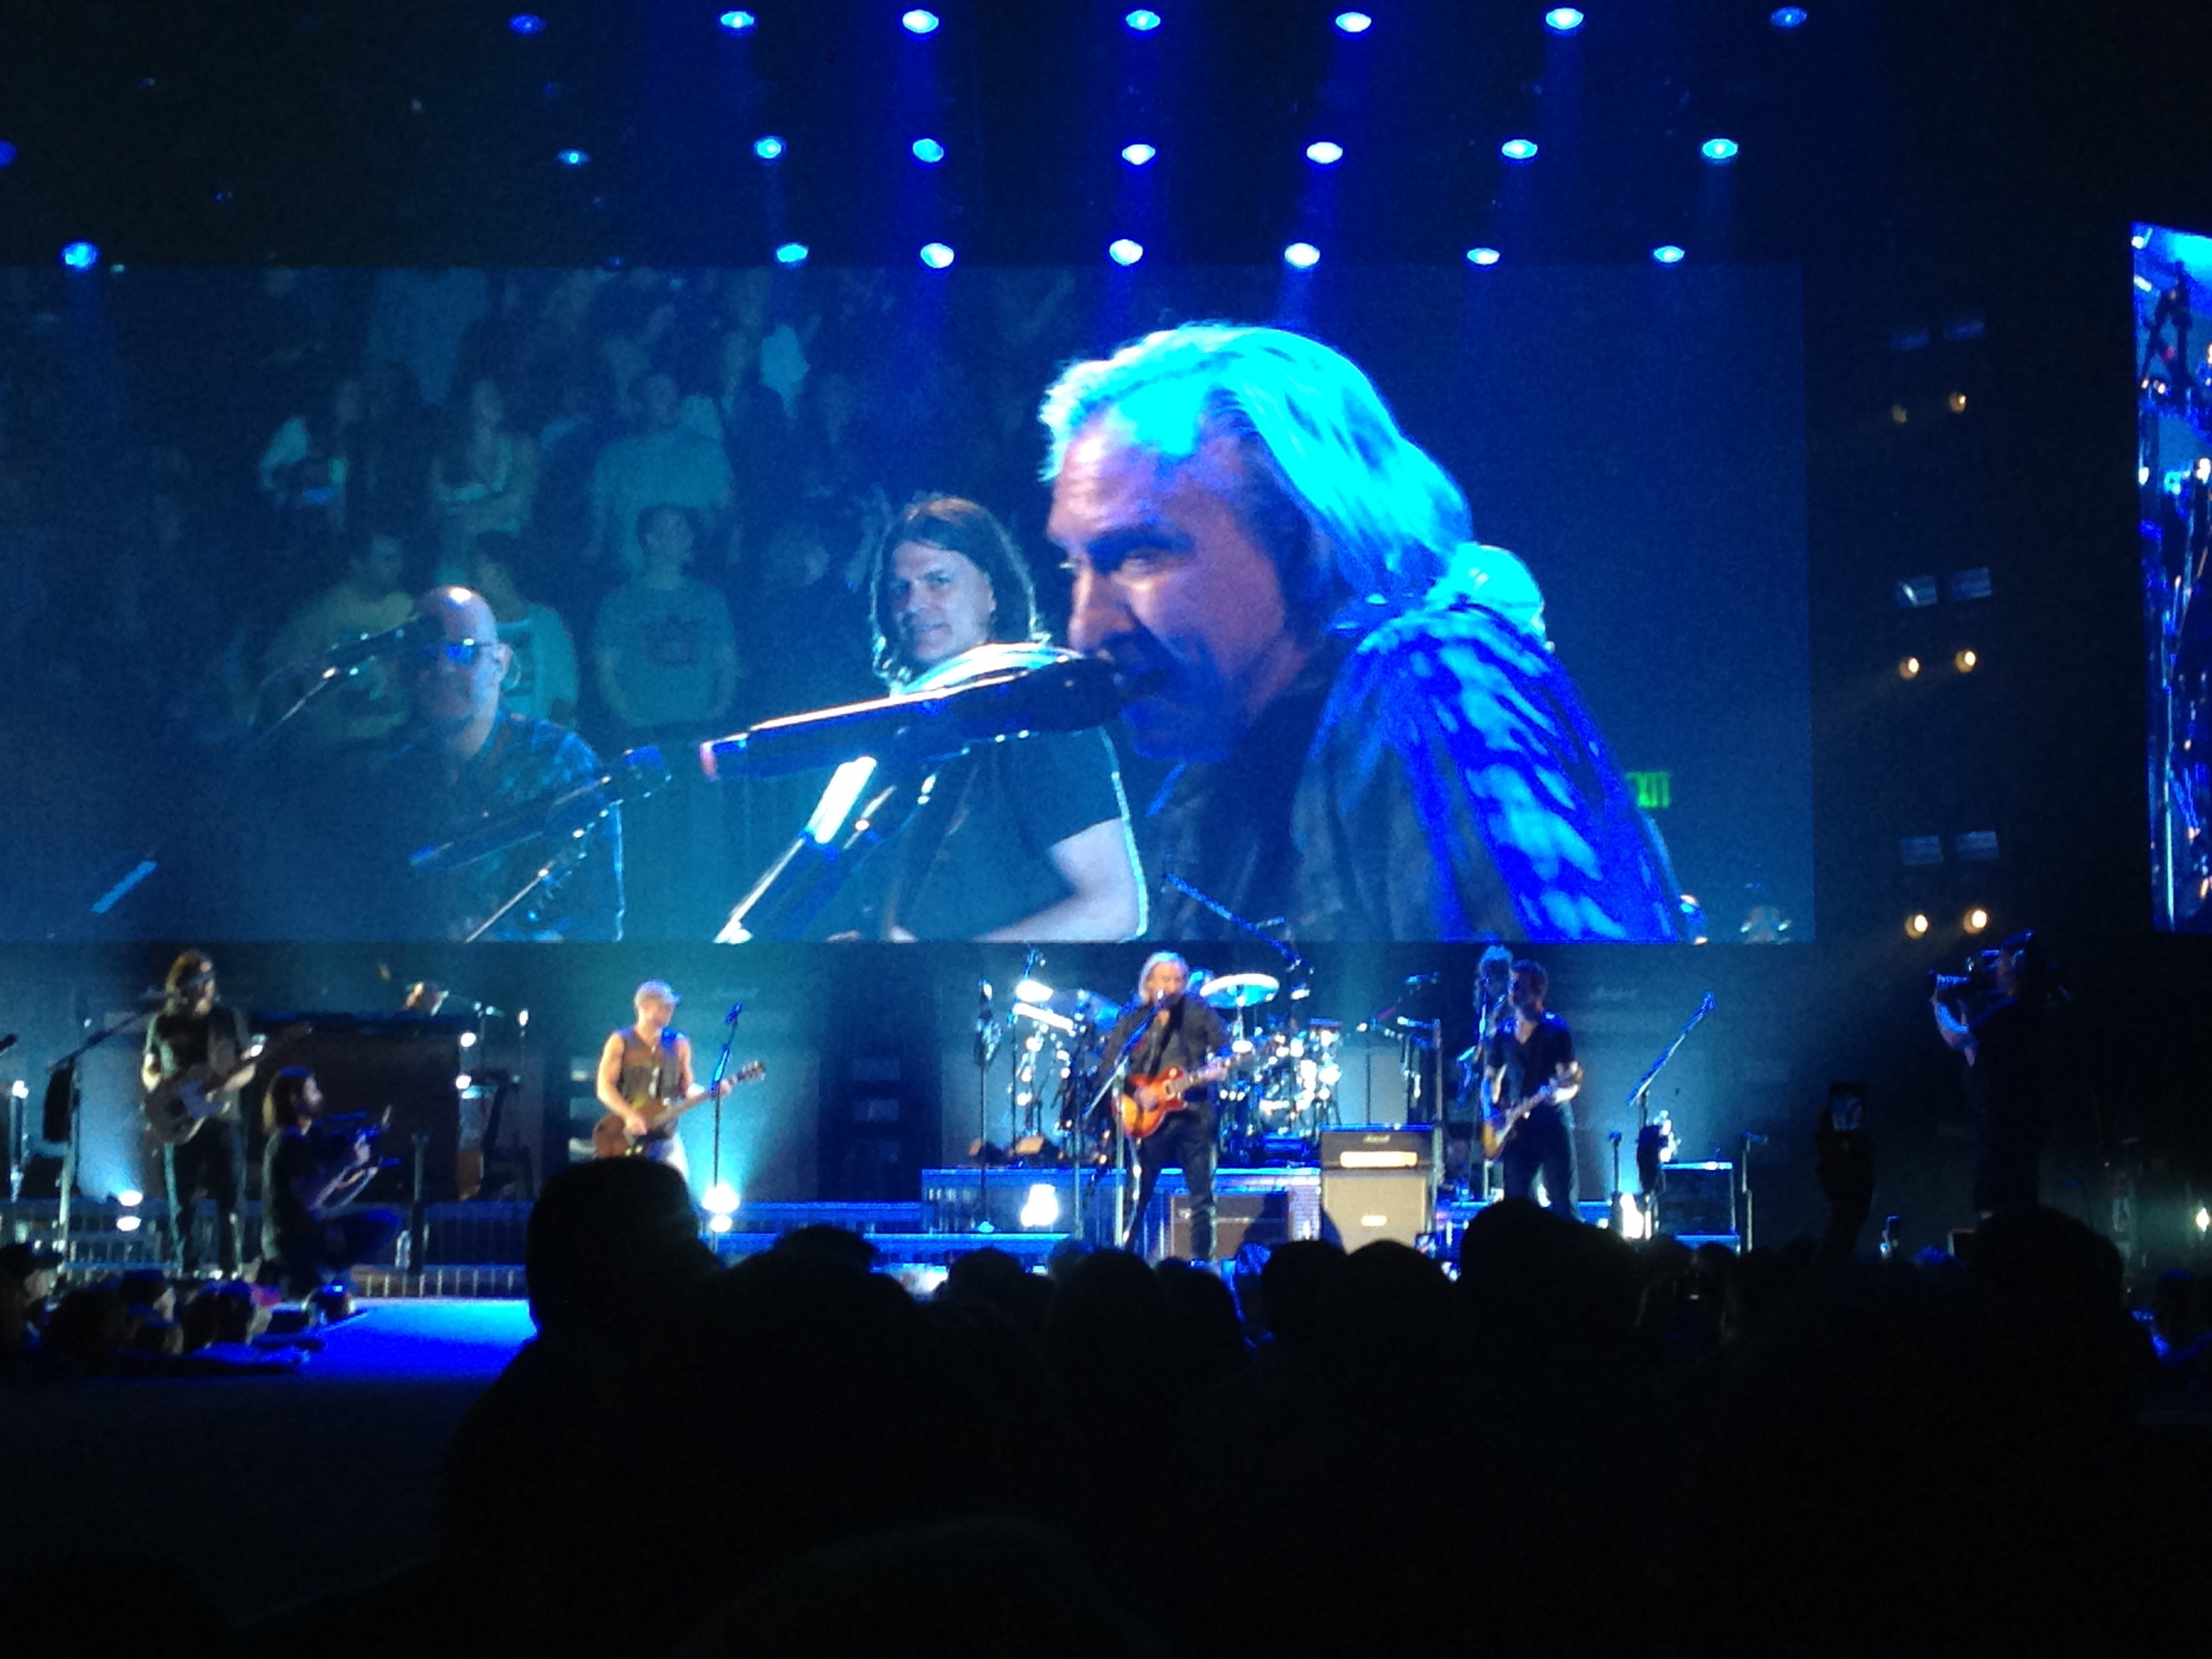 Joe Walsh using the talk box. he speaks through the tube and it goes through his guitar.